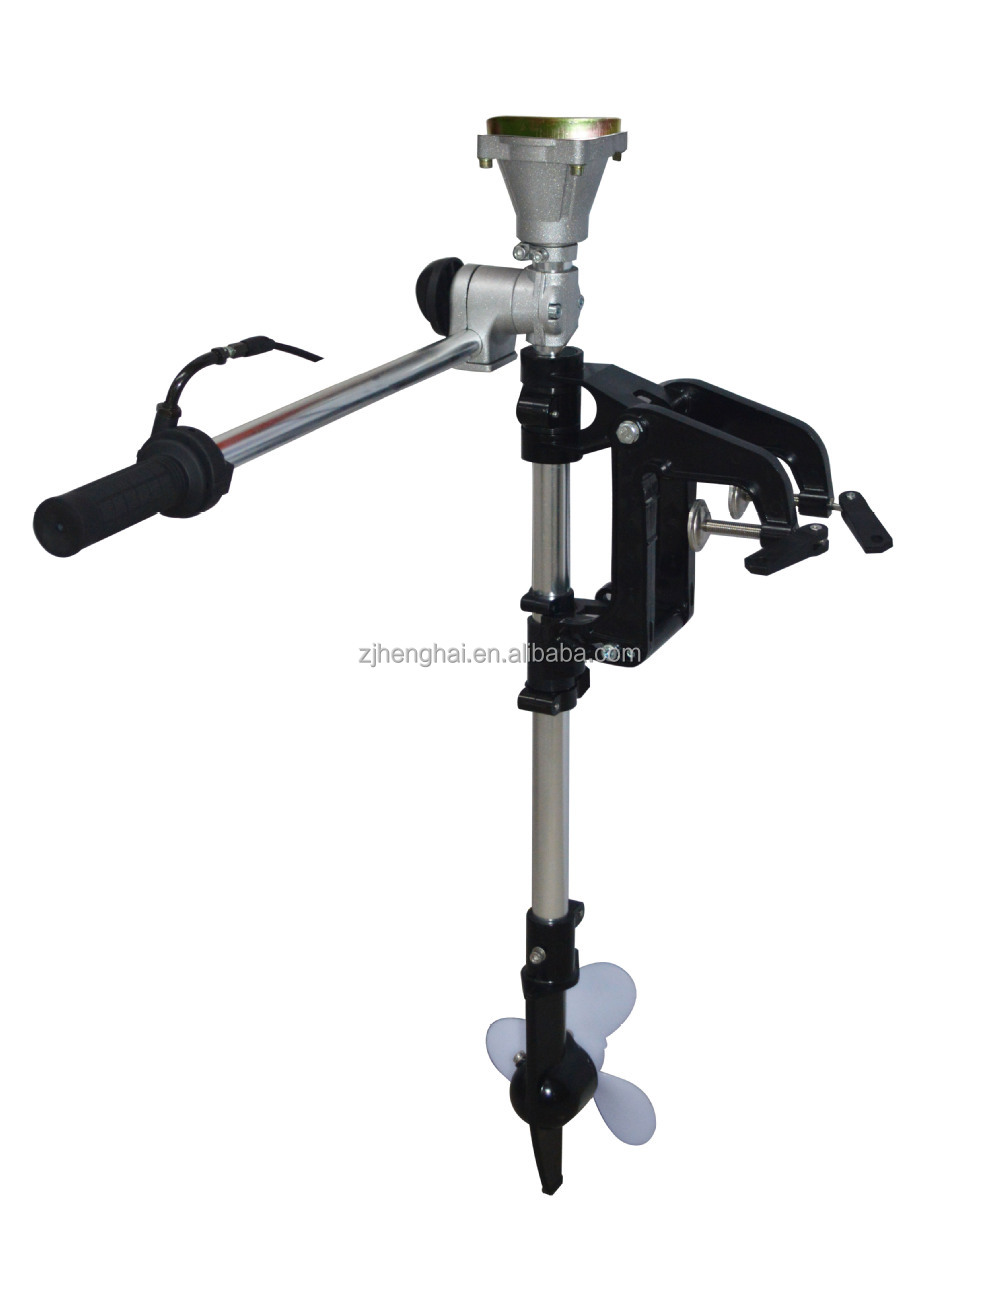 New condition cheaper price motor outboard buy motor for Air cooled outboard motor kits